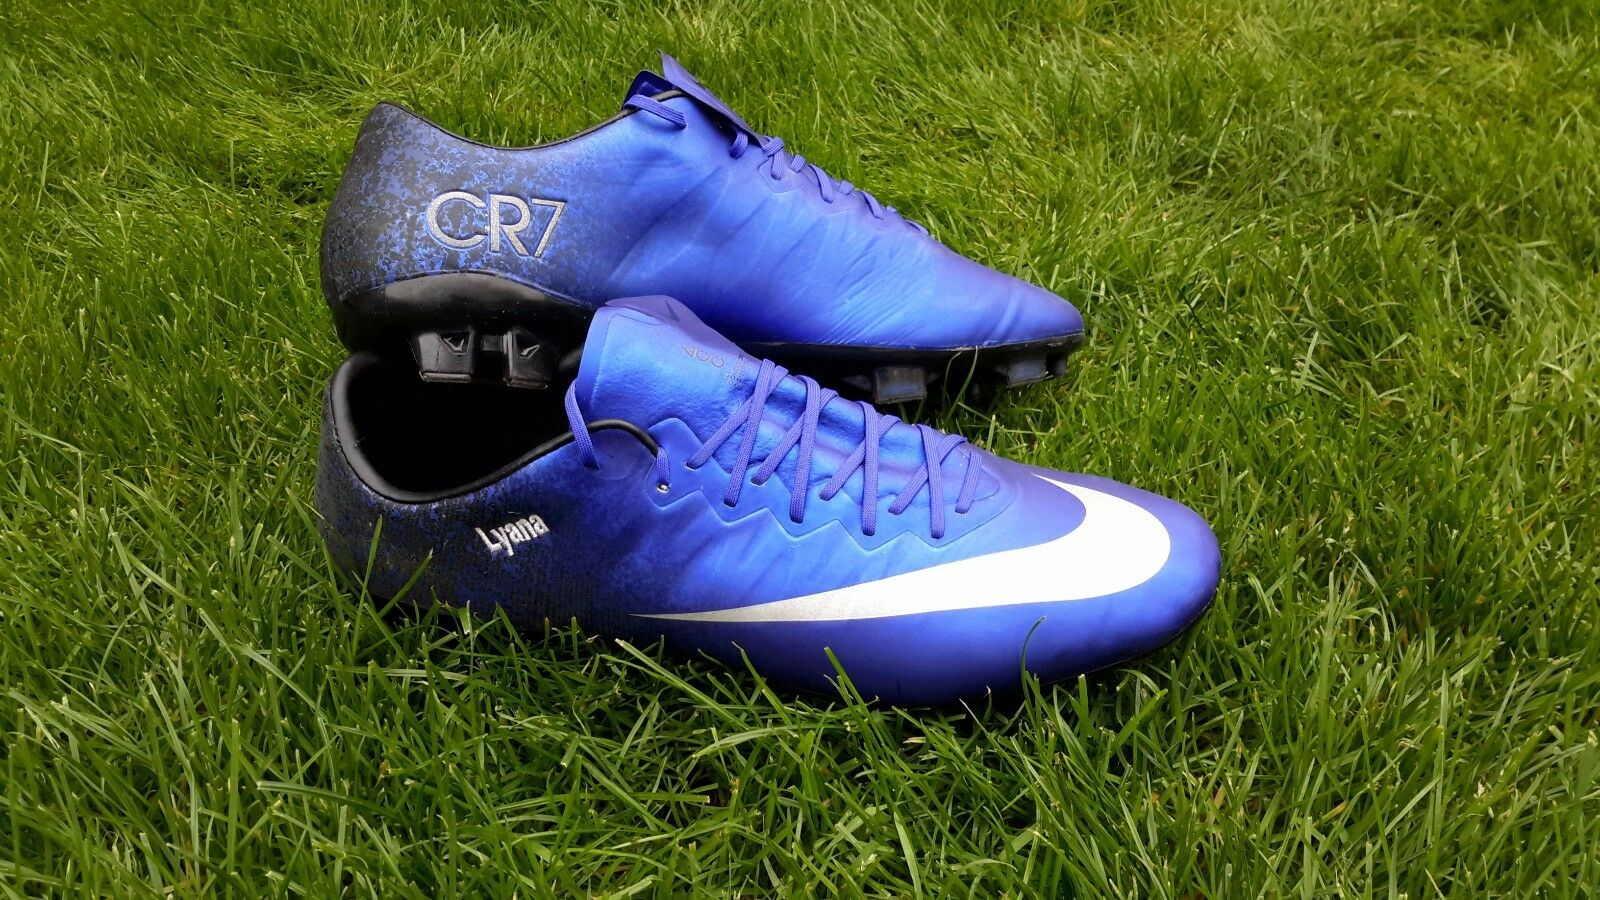 Nike cr7 charter 2 created to specifications of cristiano ronaldo talla 44.5